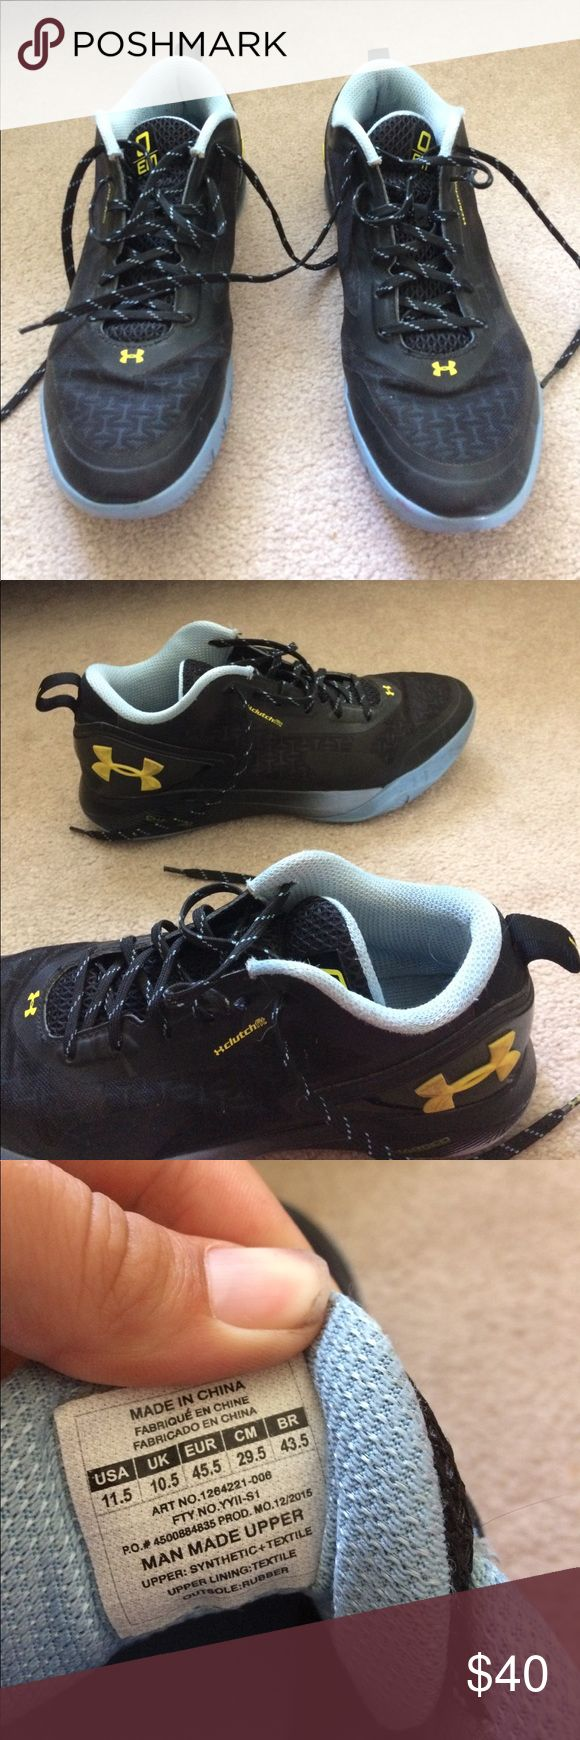 Under armor Emmanuel mudiay shoes Emmanuel Mudiay basketball shoes with little wear. Size 11.5. Under Armour Shoes Athletic Shoes